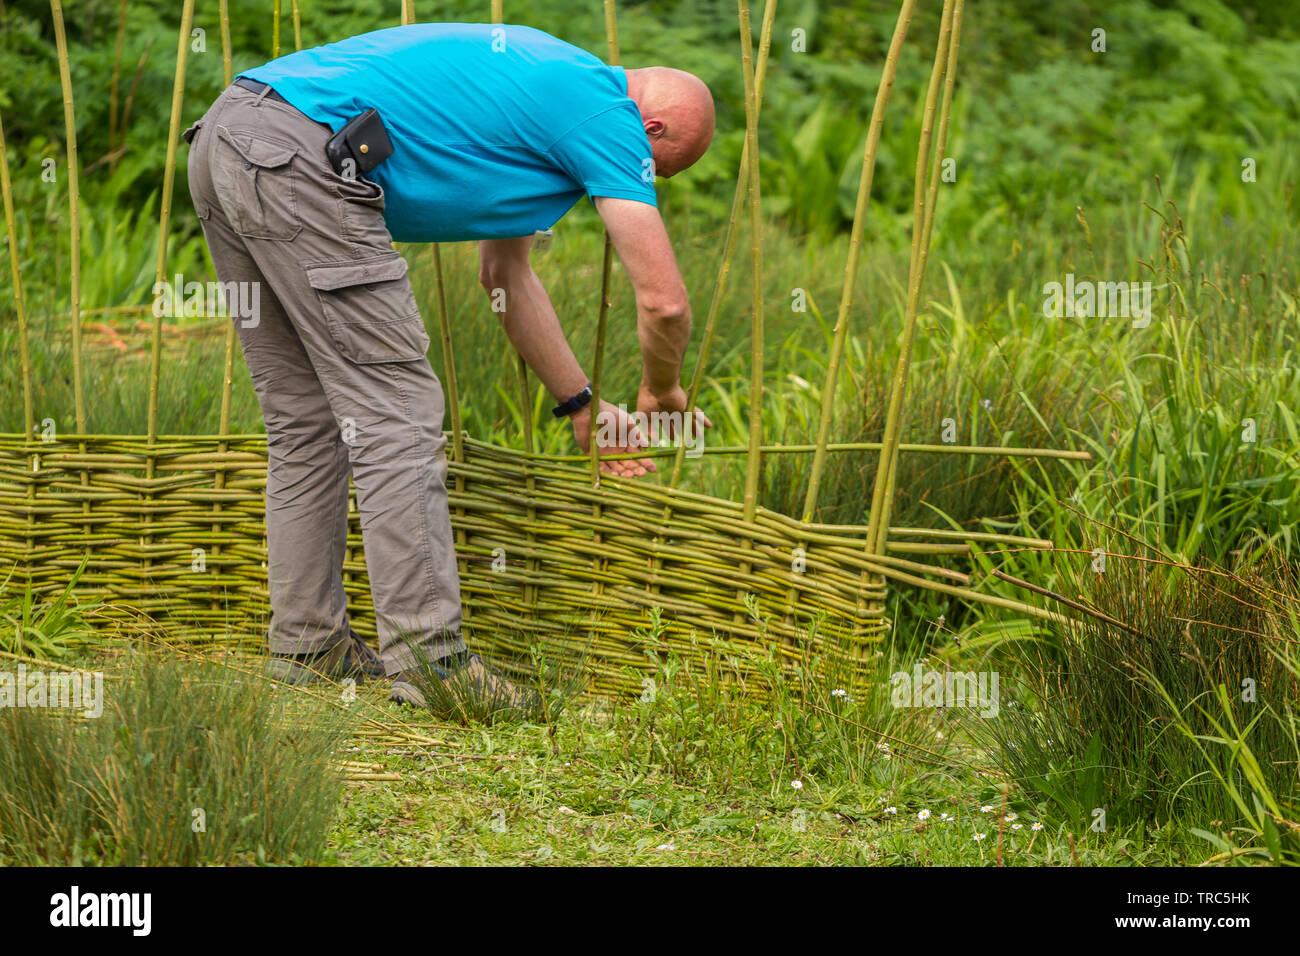 Creating a new fence at Slimbridge - Stock Image